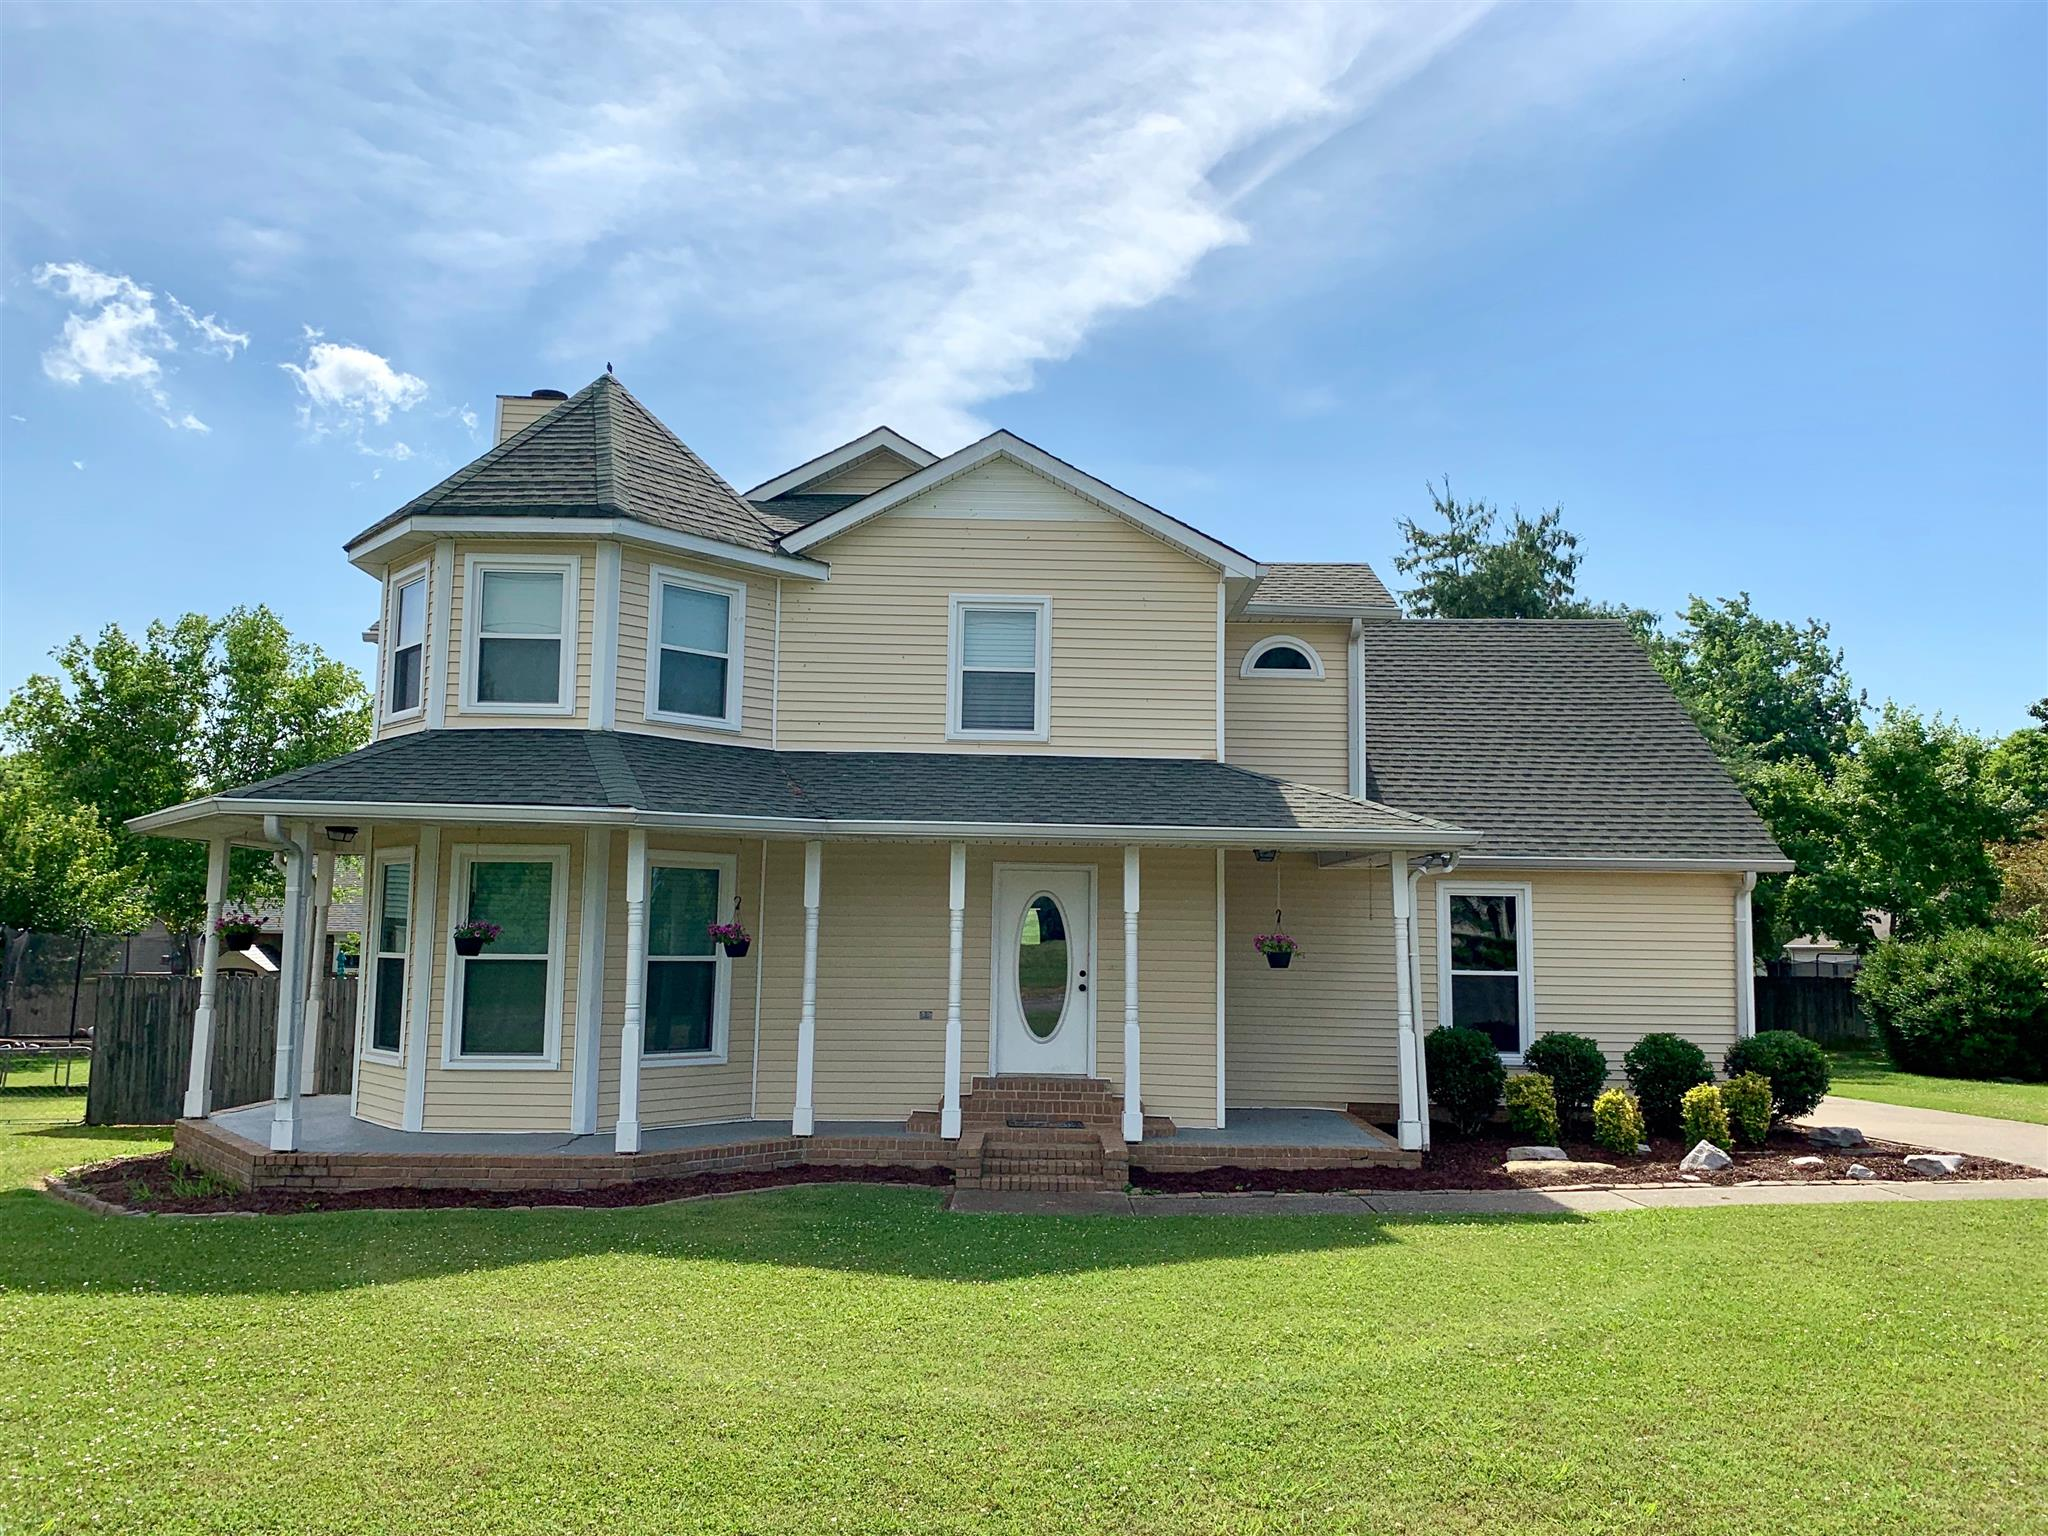 1127 Cason Ln, Murfreesboro in Rutherford County County, TN 37128 Home for Sale